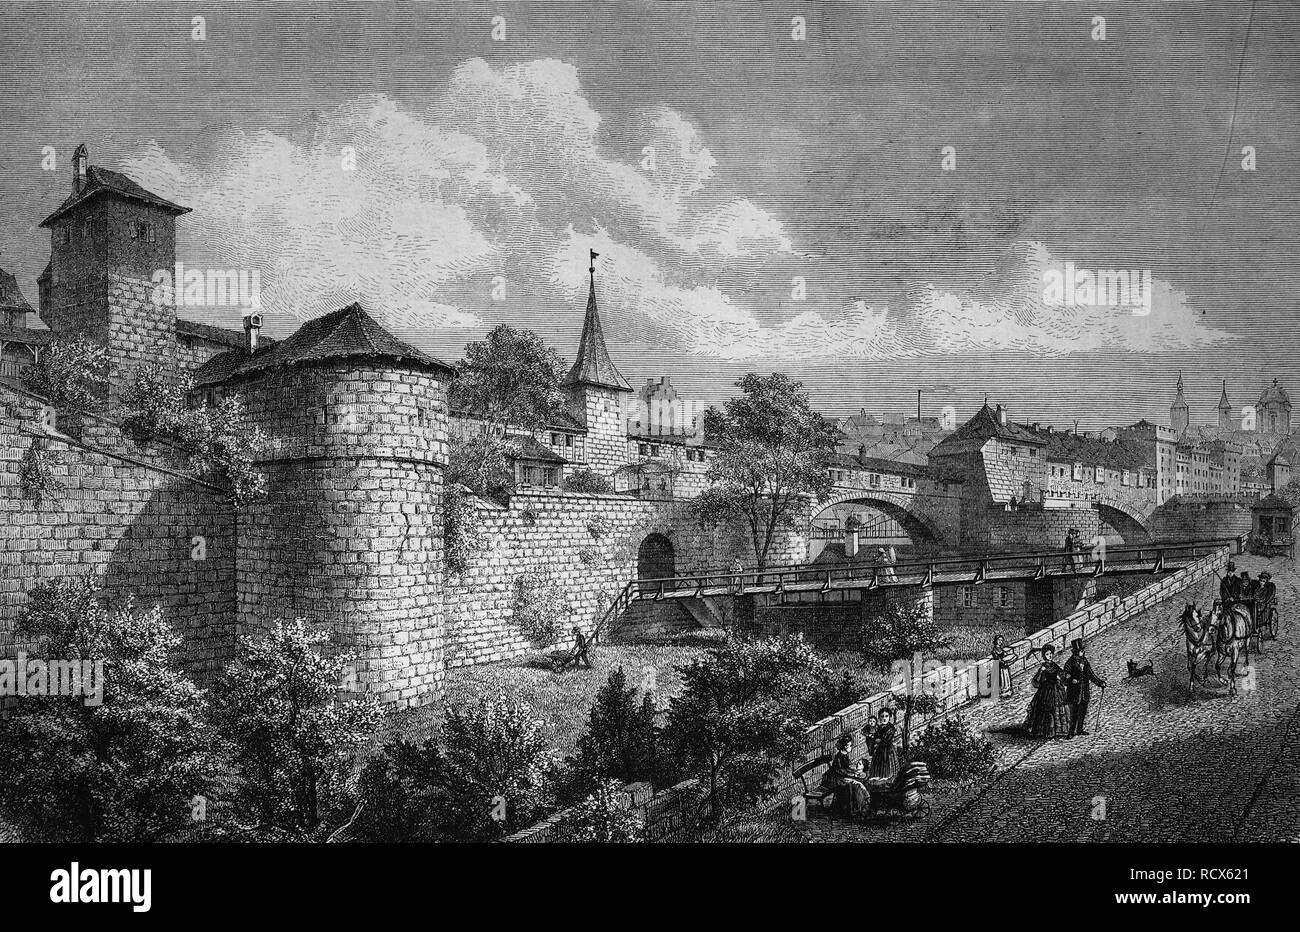 Bastion and moat at Hallertor in Nuremberg, Germany, wood engraving, c 1880 - Stock Image